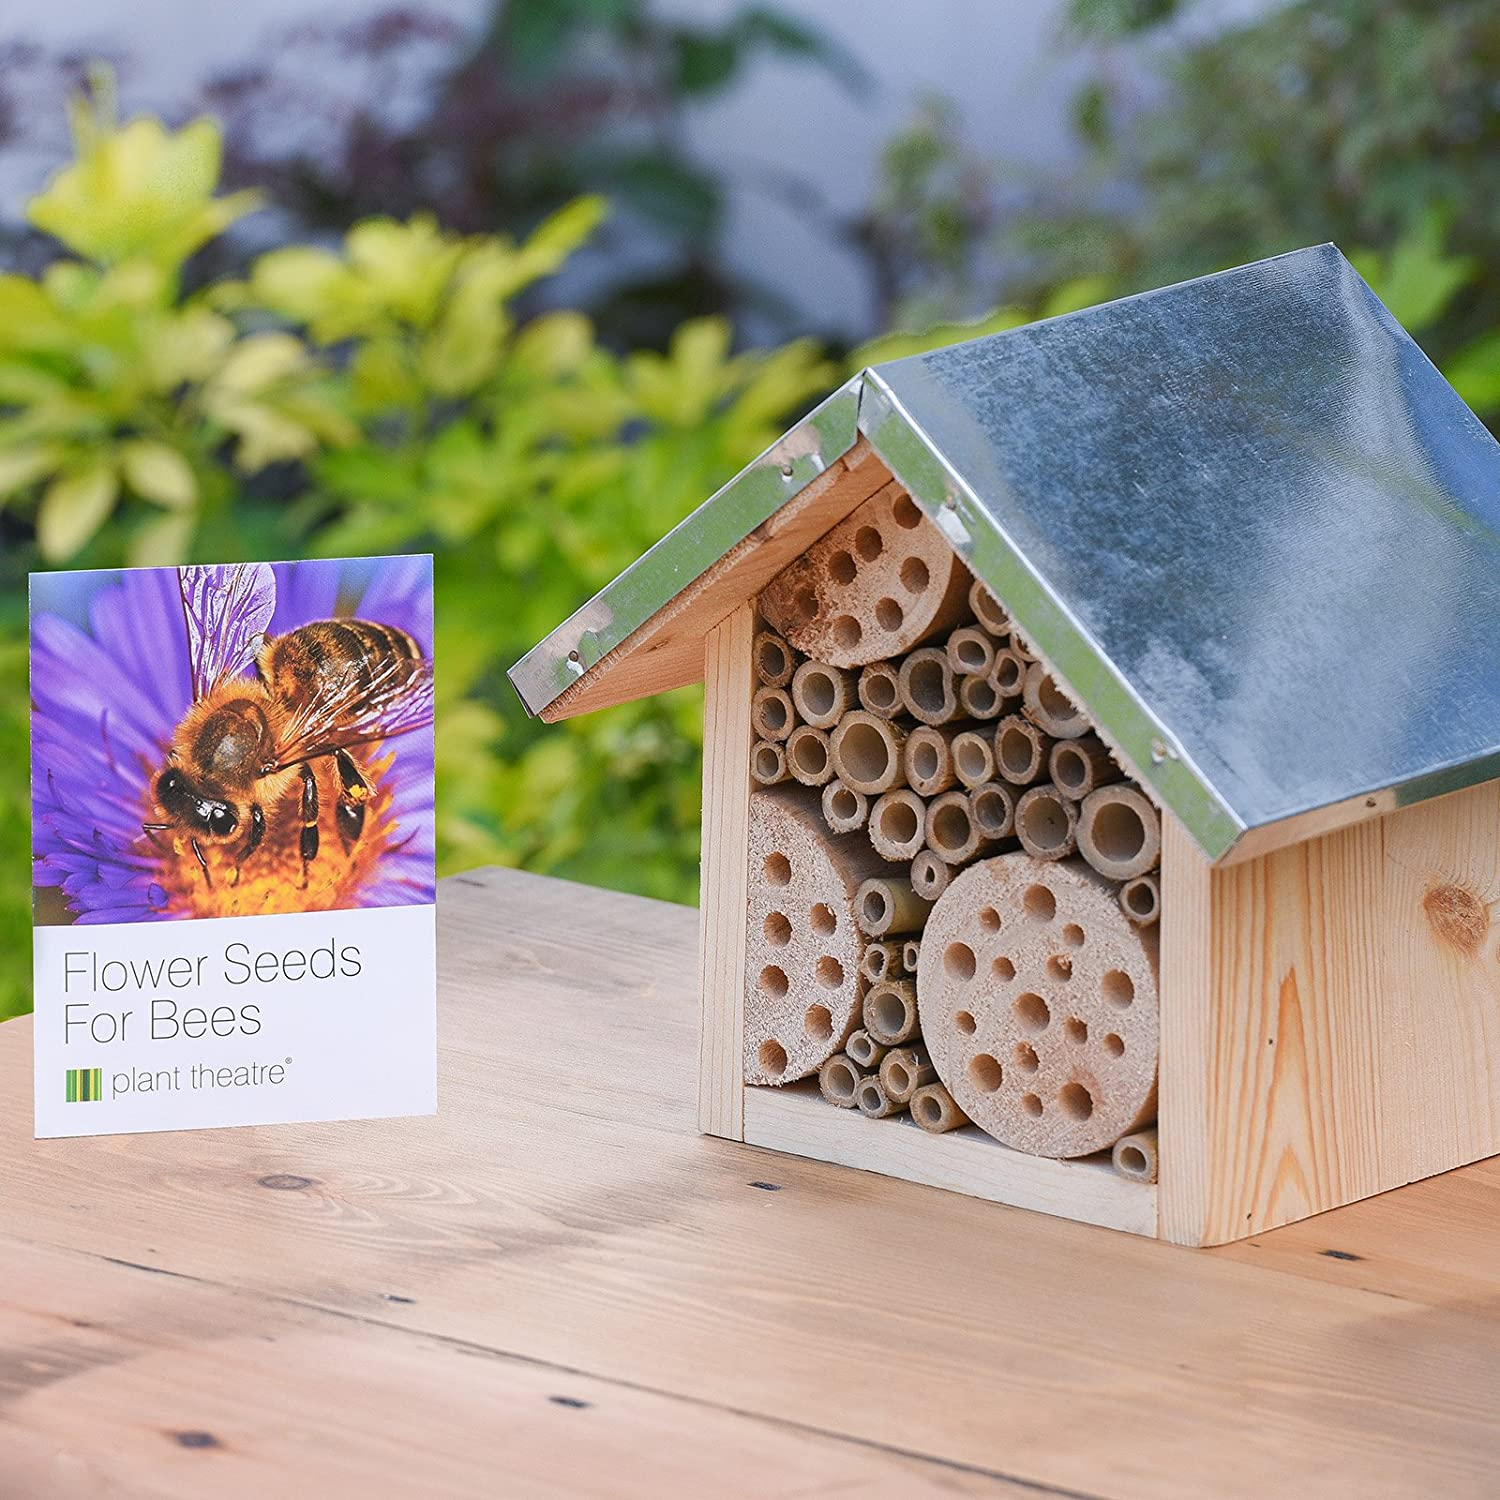 Bee hotel flower seeds for bees by plant theatre excellent gift bee hotel flower seeds for bees by plant theatre excellent gift idea amazon garden outdoors izmirmasajfo